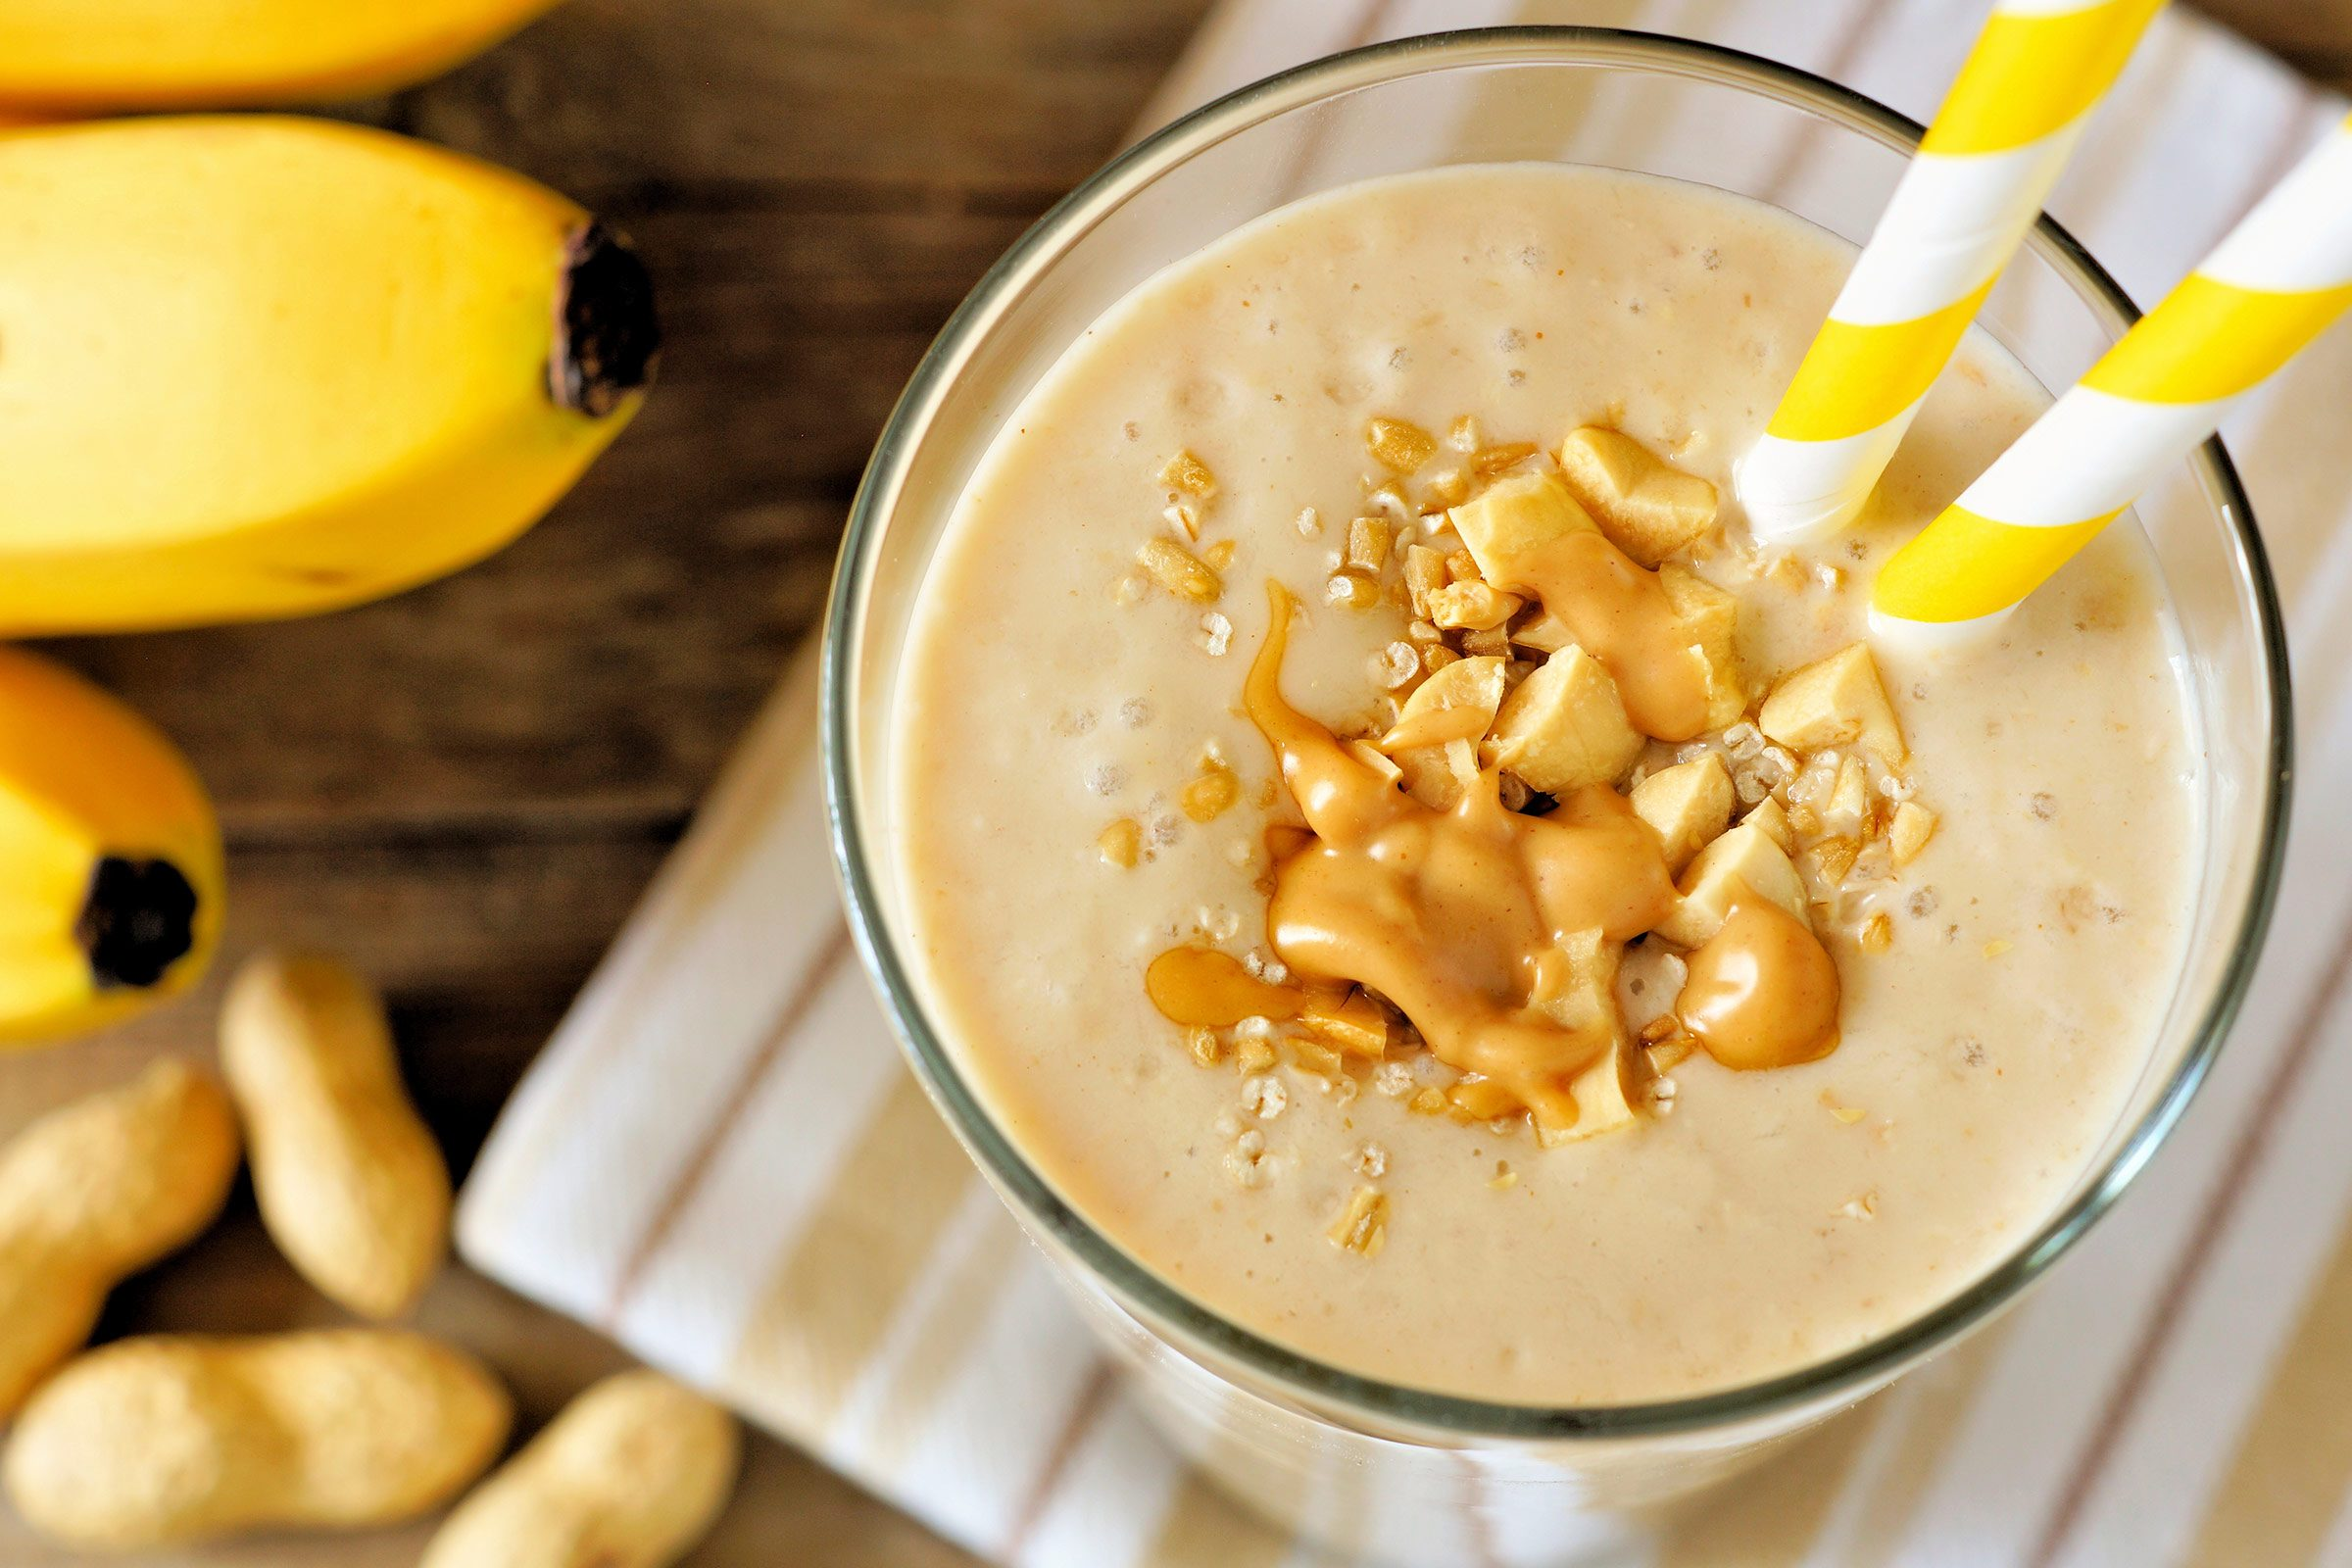 Banana-Peanut Butter Smoothies